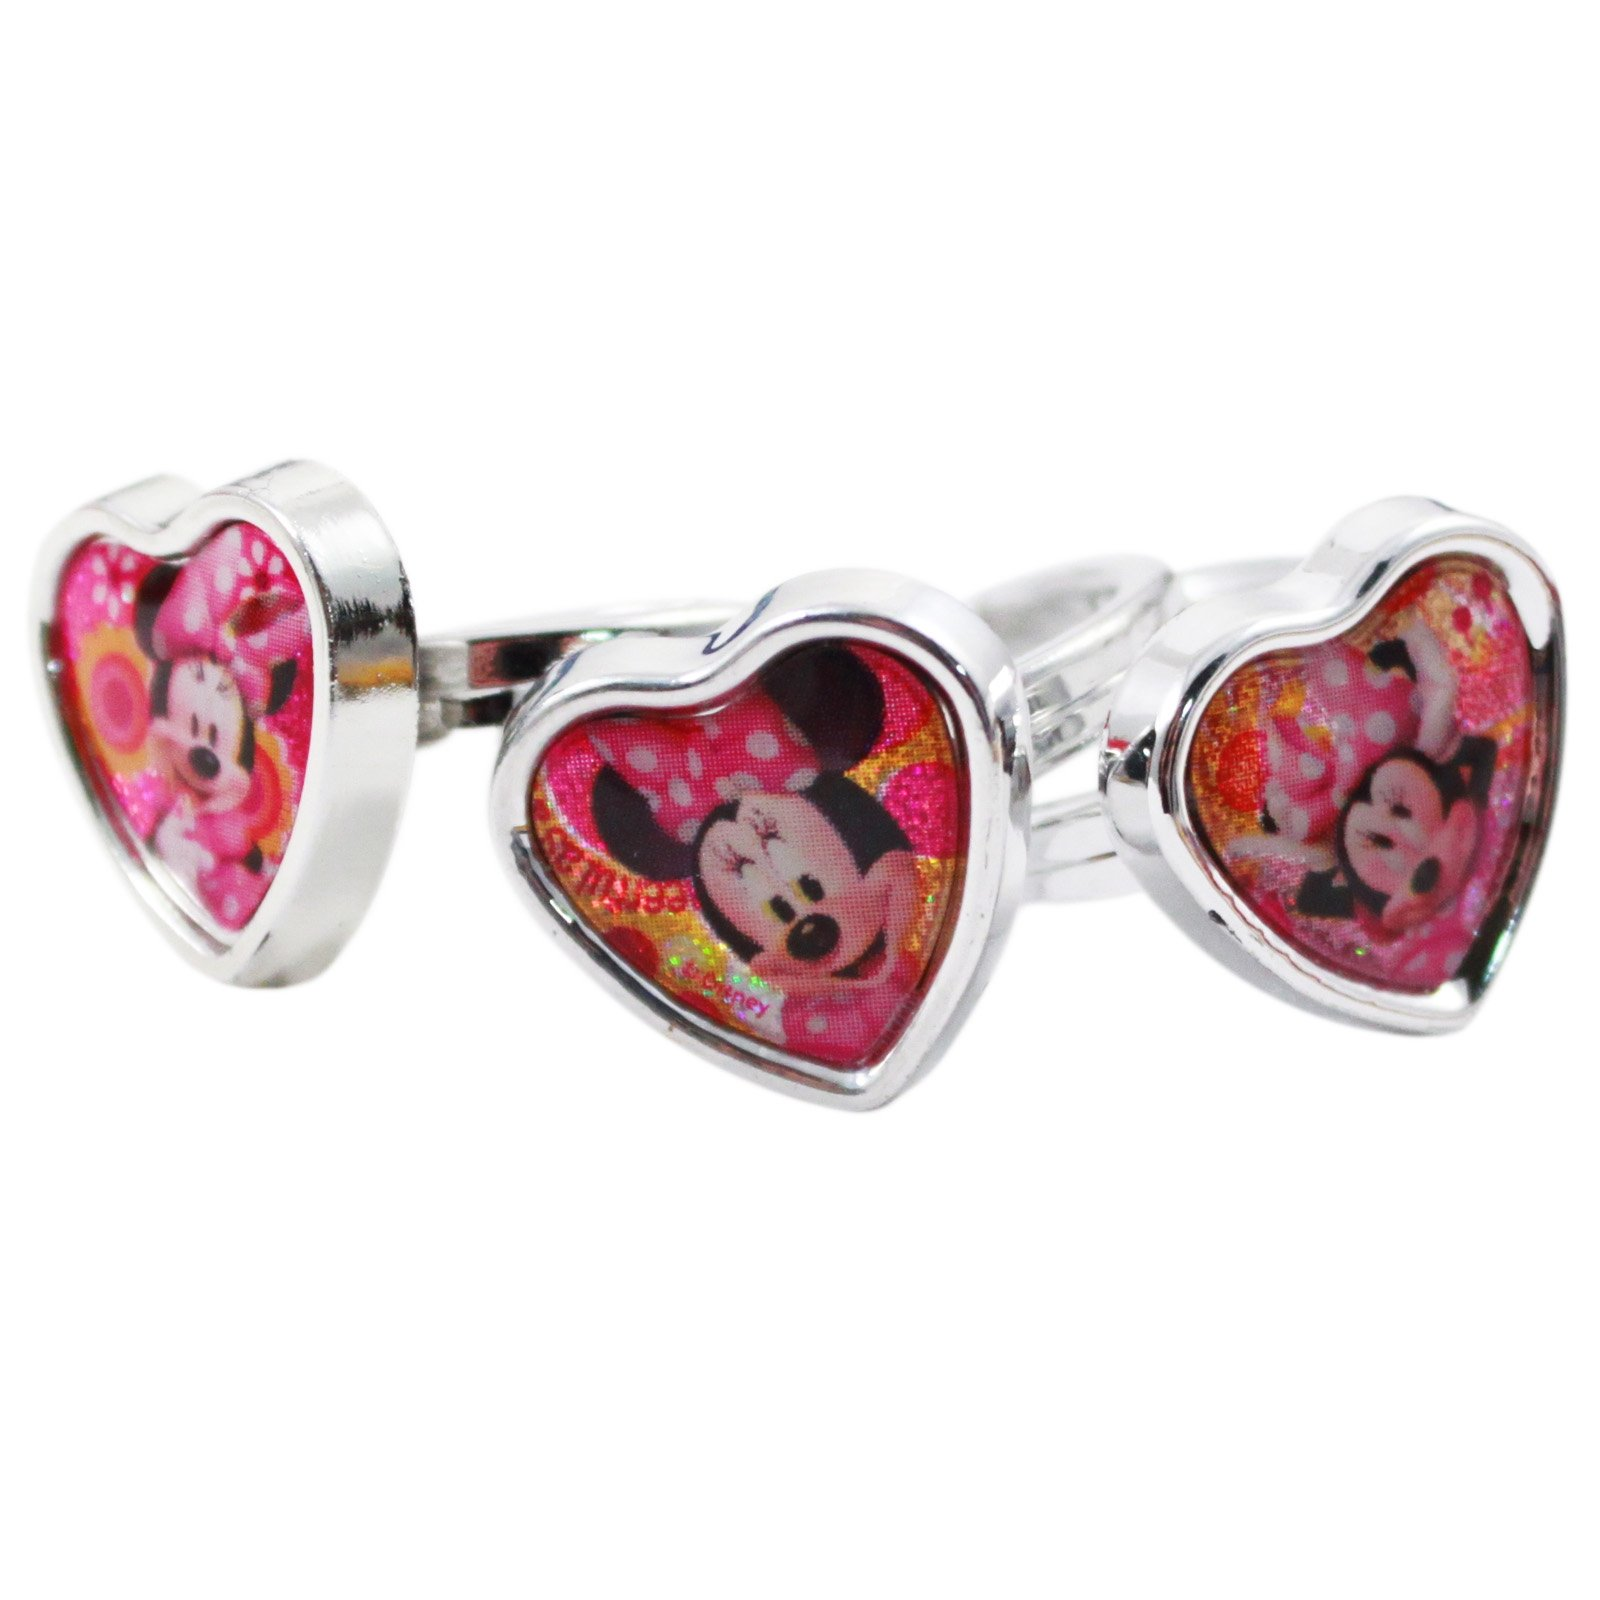 21pc Disney Minnie Mouse Girls Rings and Earrings Set Days of the Week